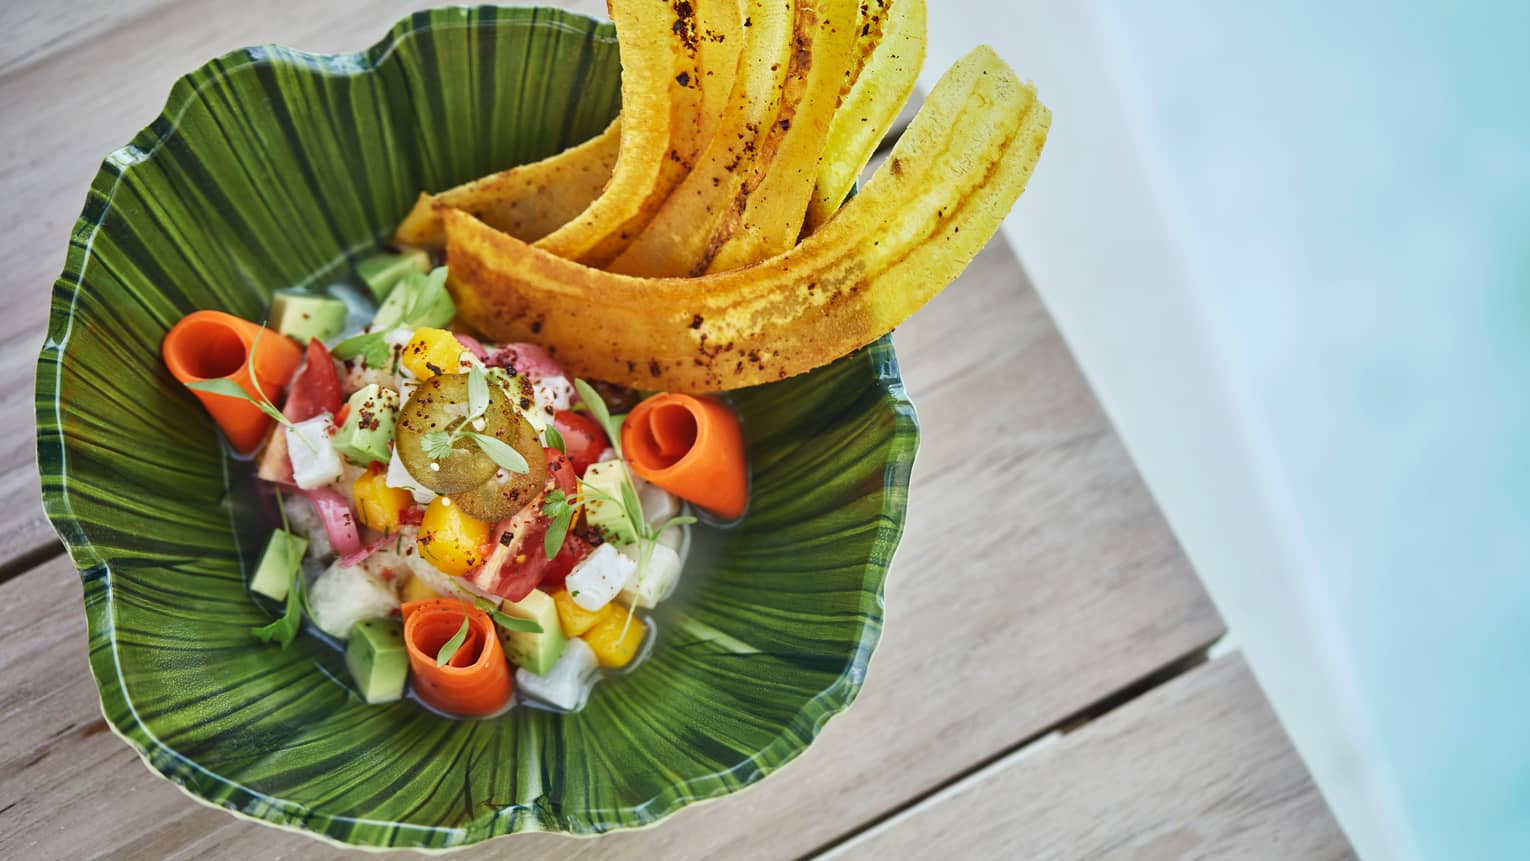 Poolside dining. View of tropical dish snapper ceviche with Florida mango